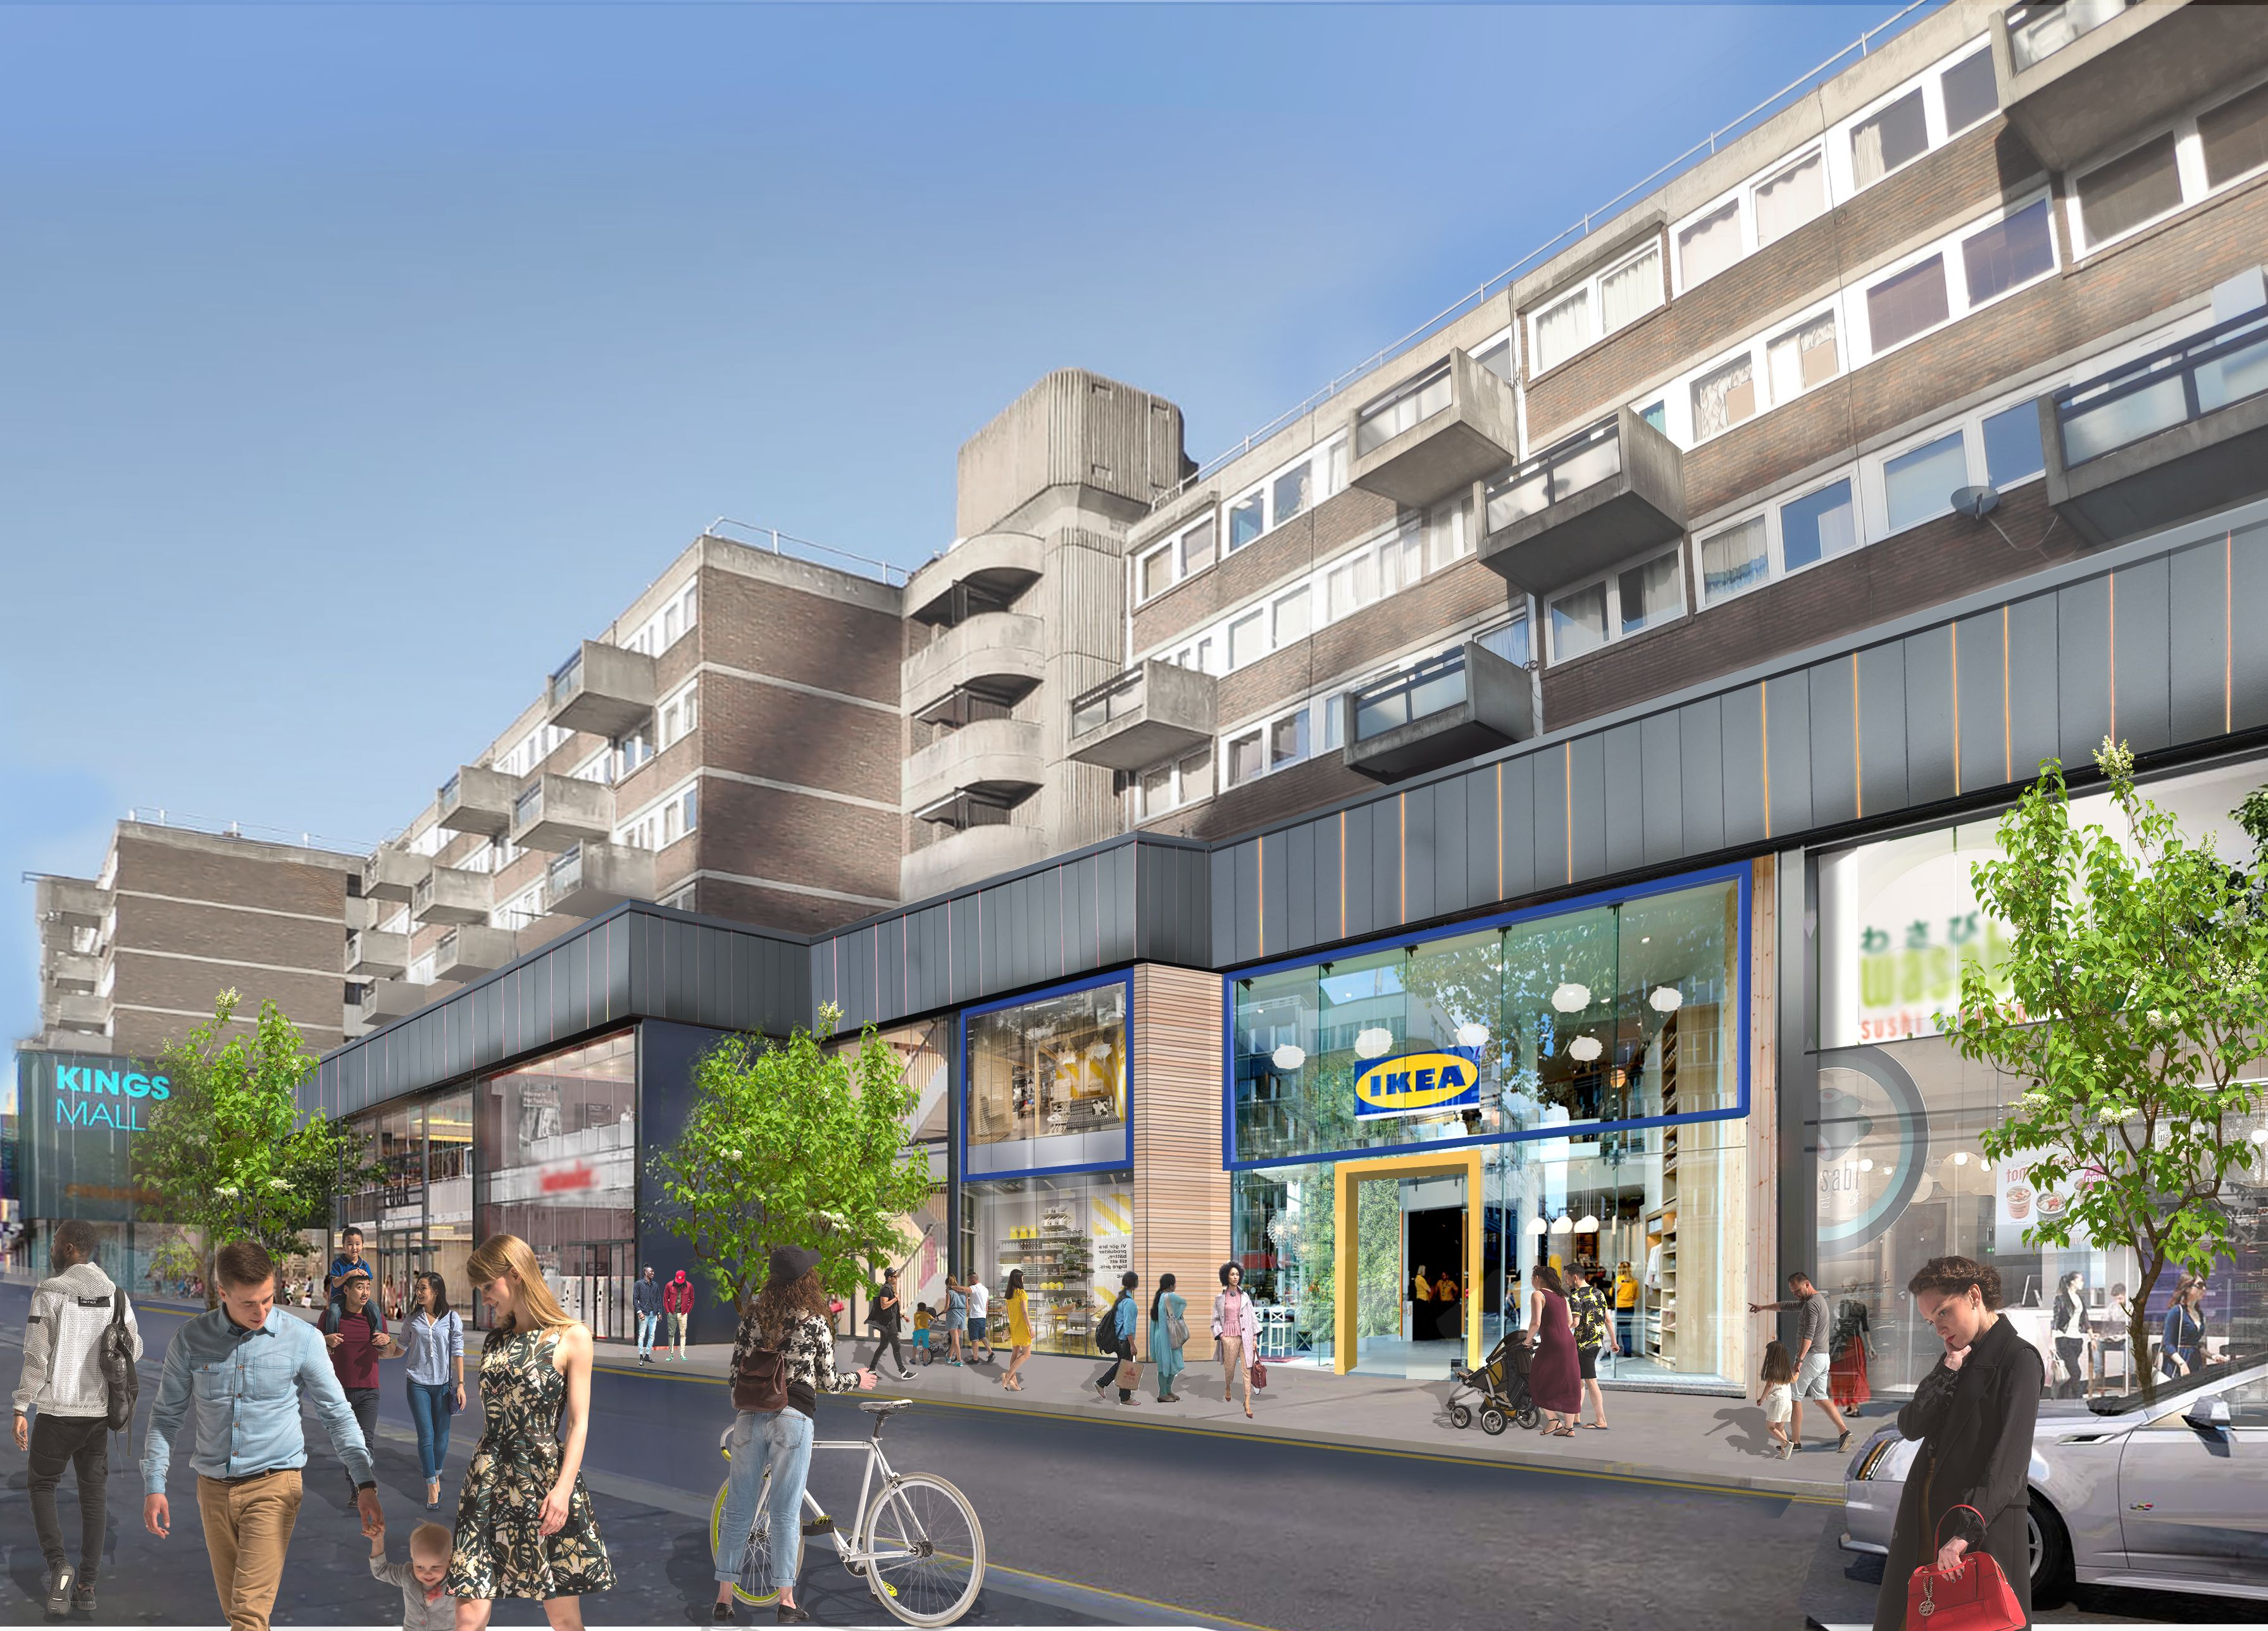 Ikea is opening a small city centre store in Hammersmith, London